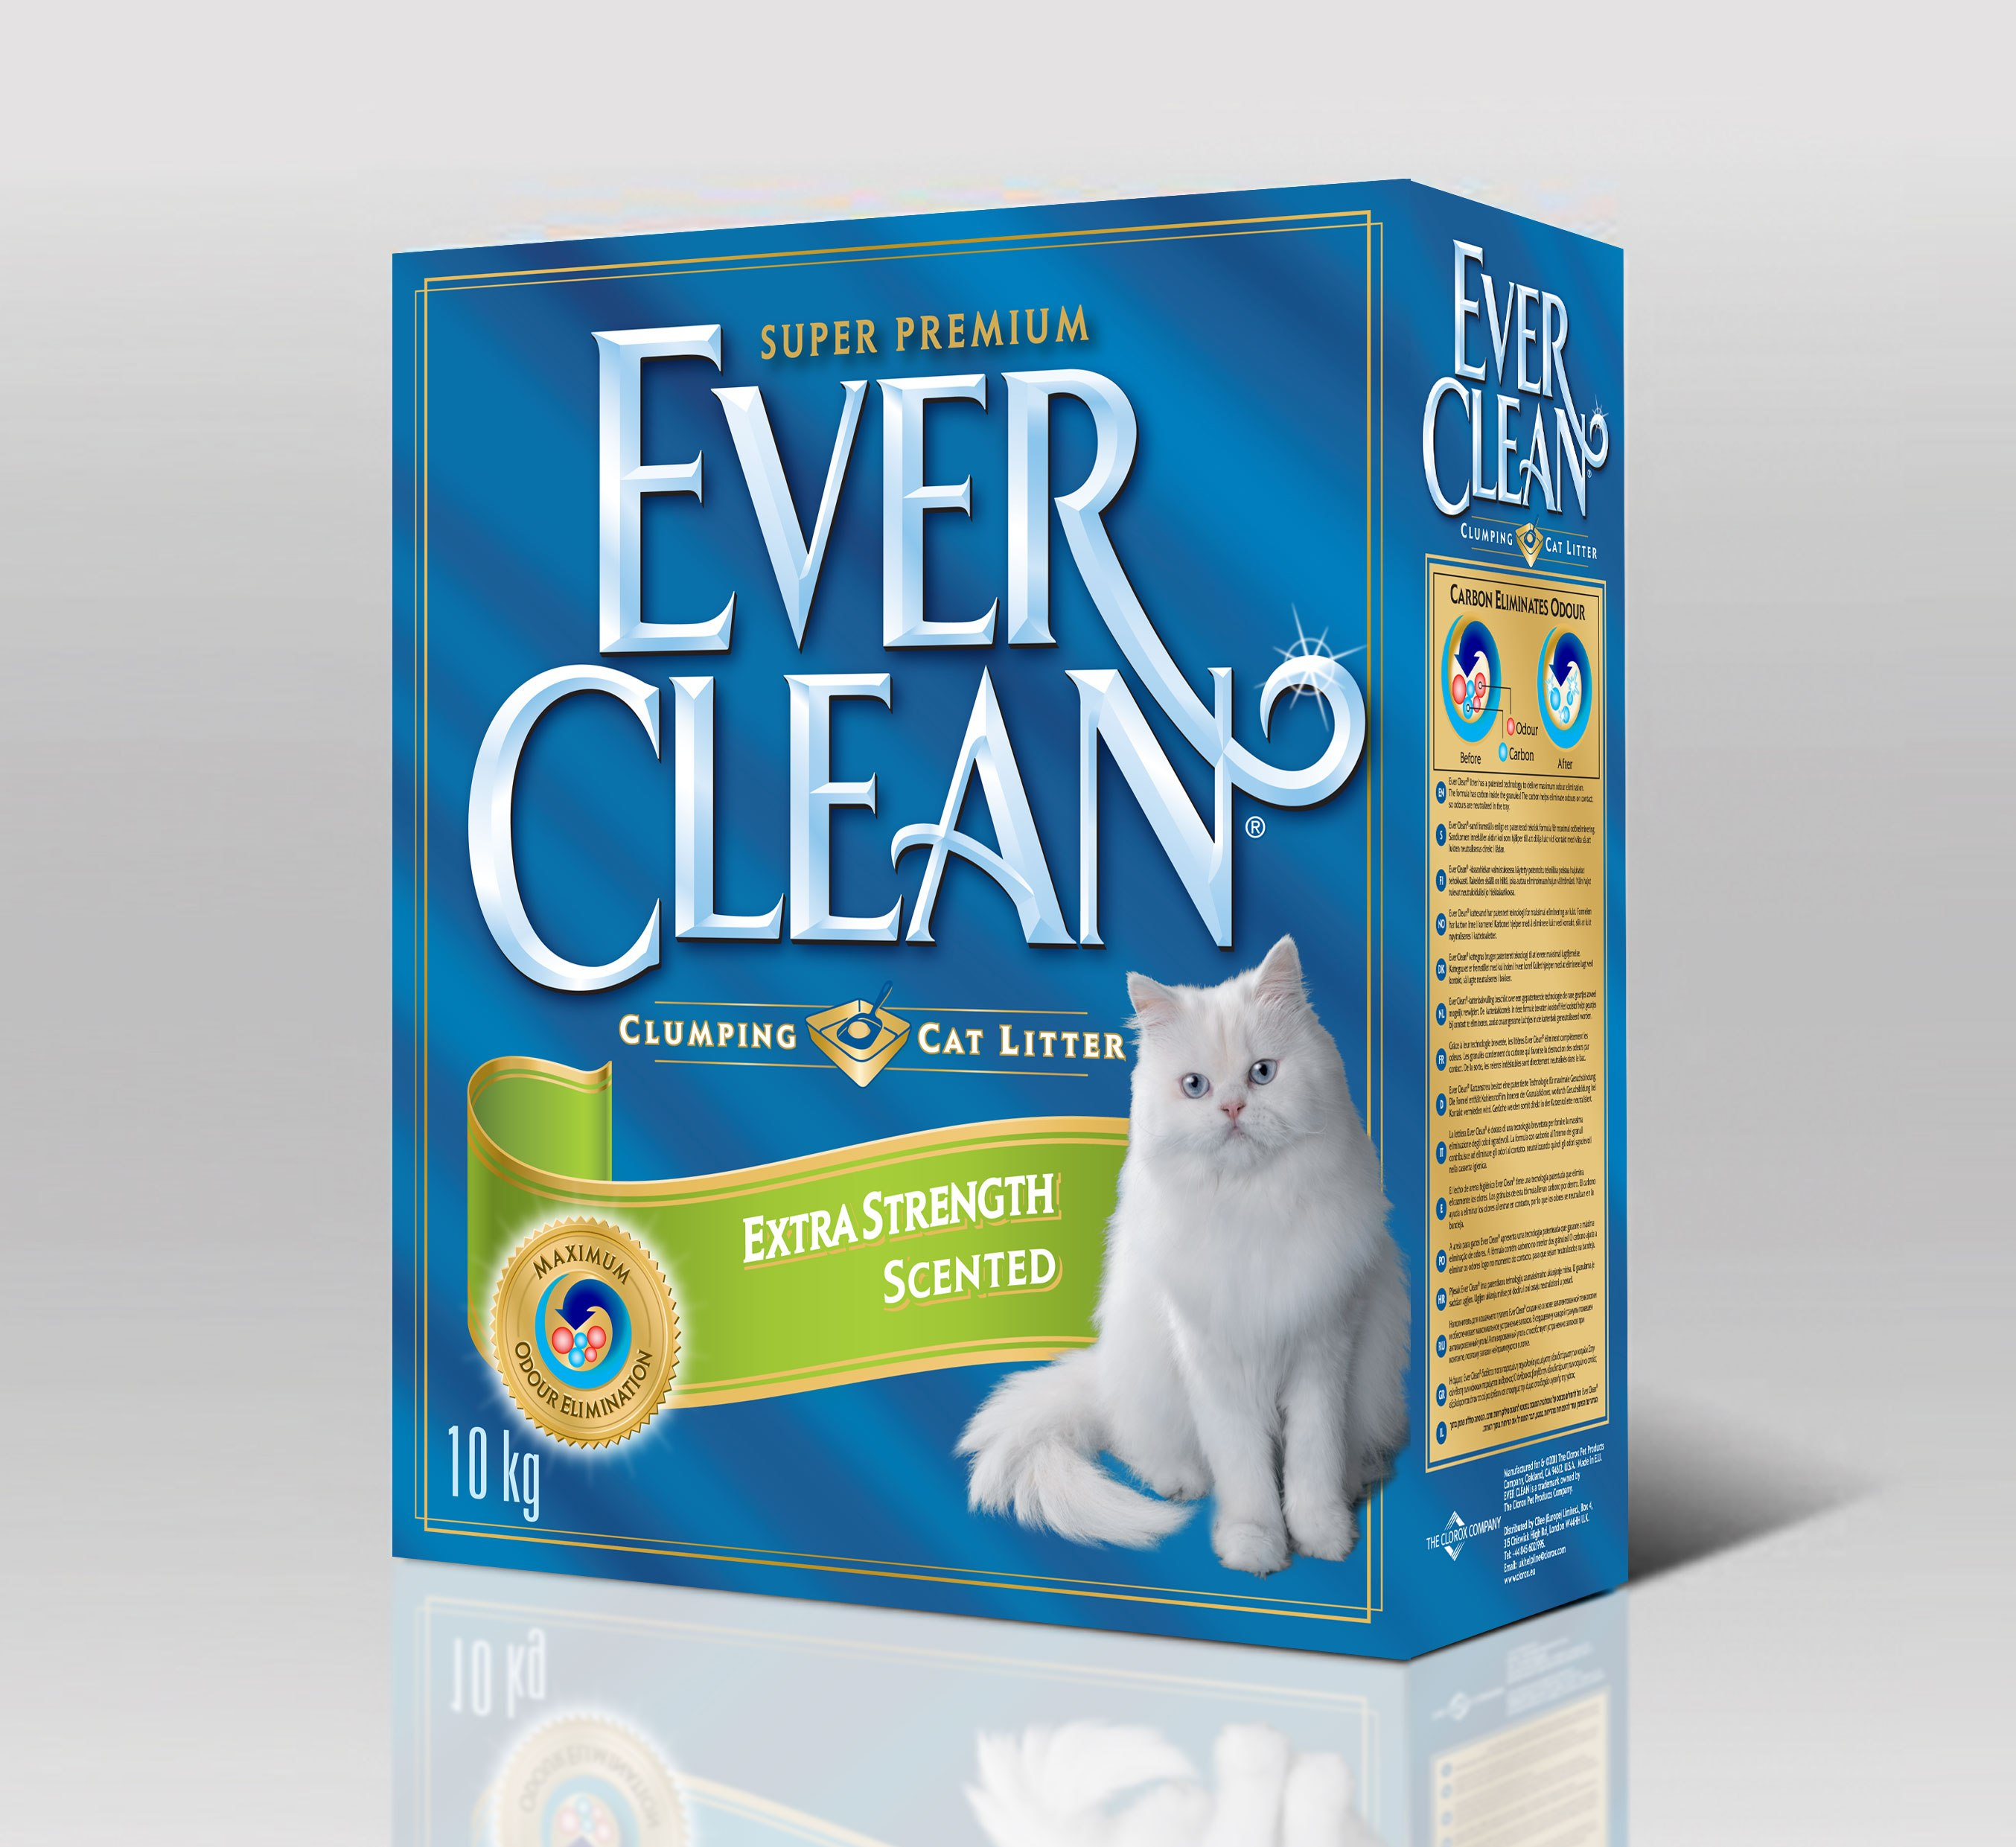 EVER CLEAN Extra Strength Scented 10 л